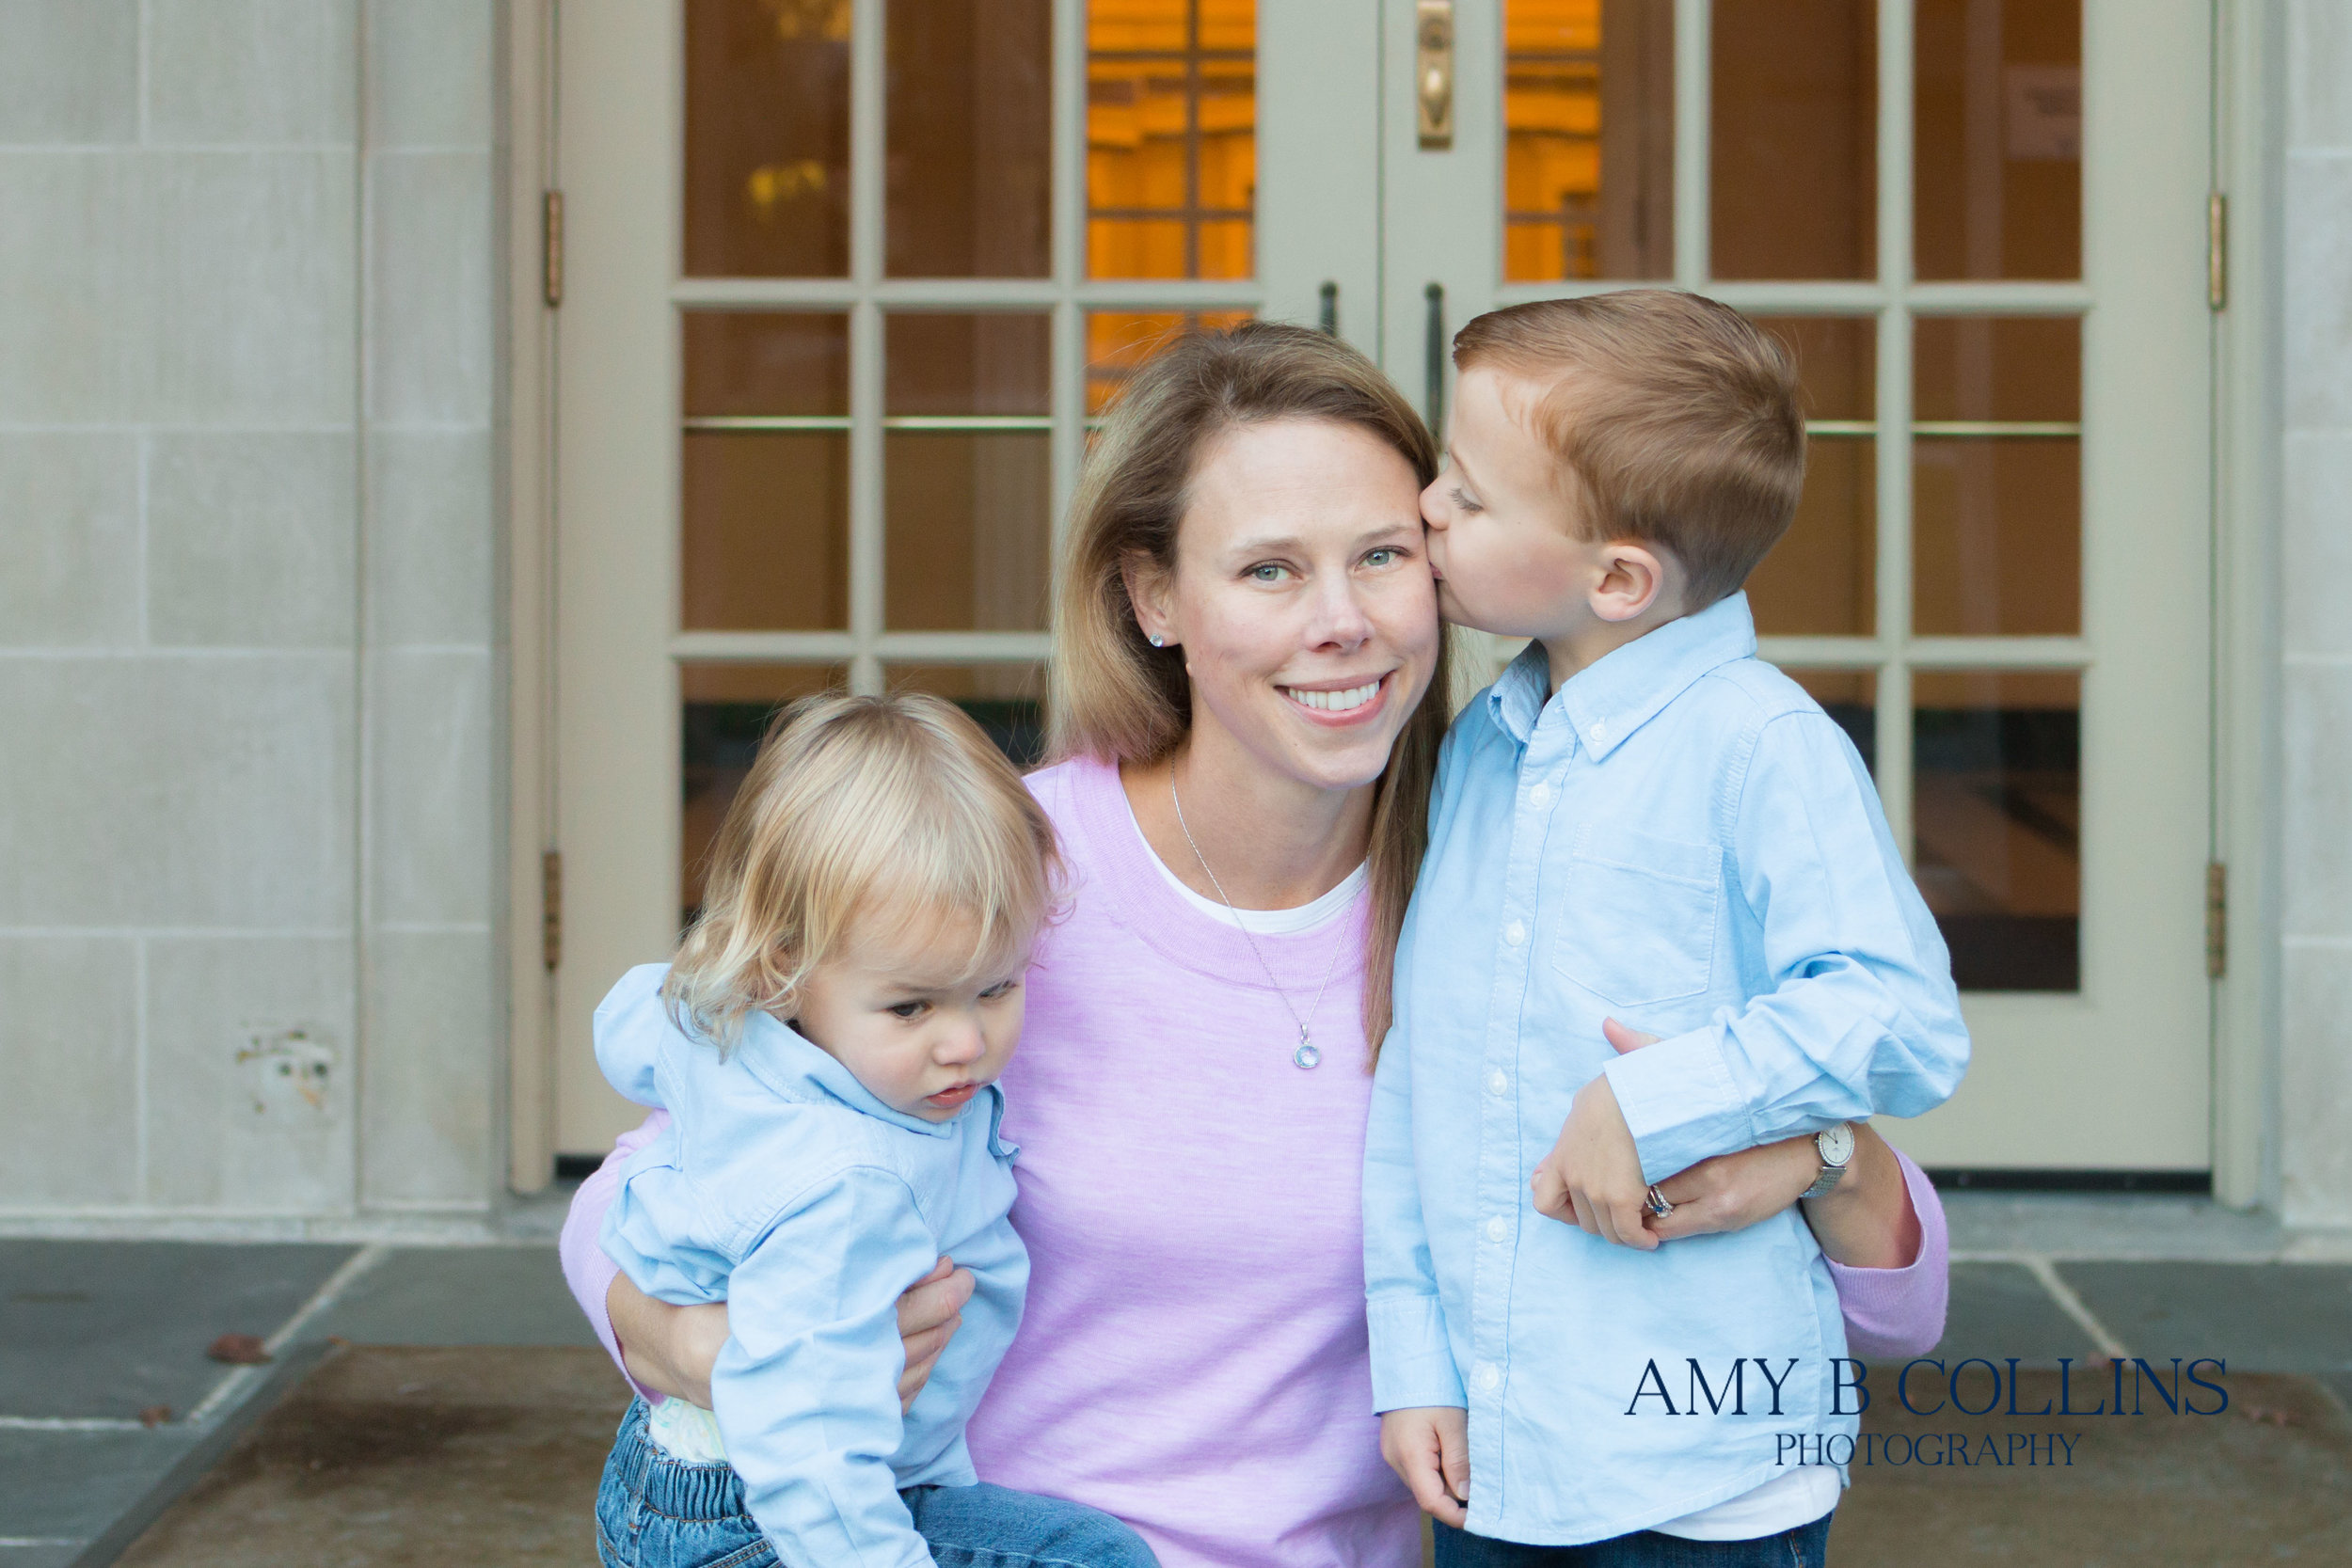 AmyBCollinsPhotography_FamilySession_H-8.jpg